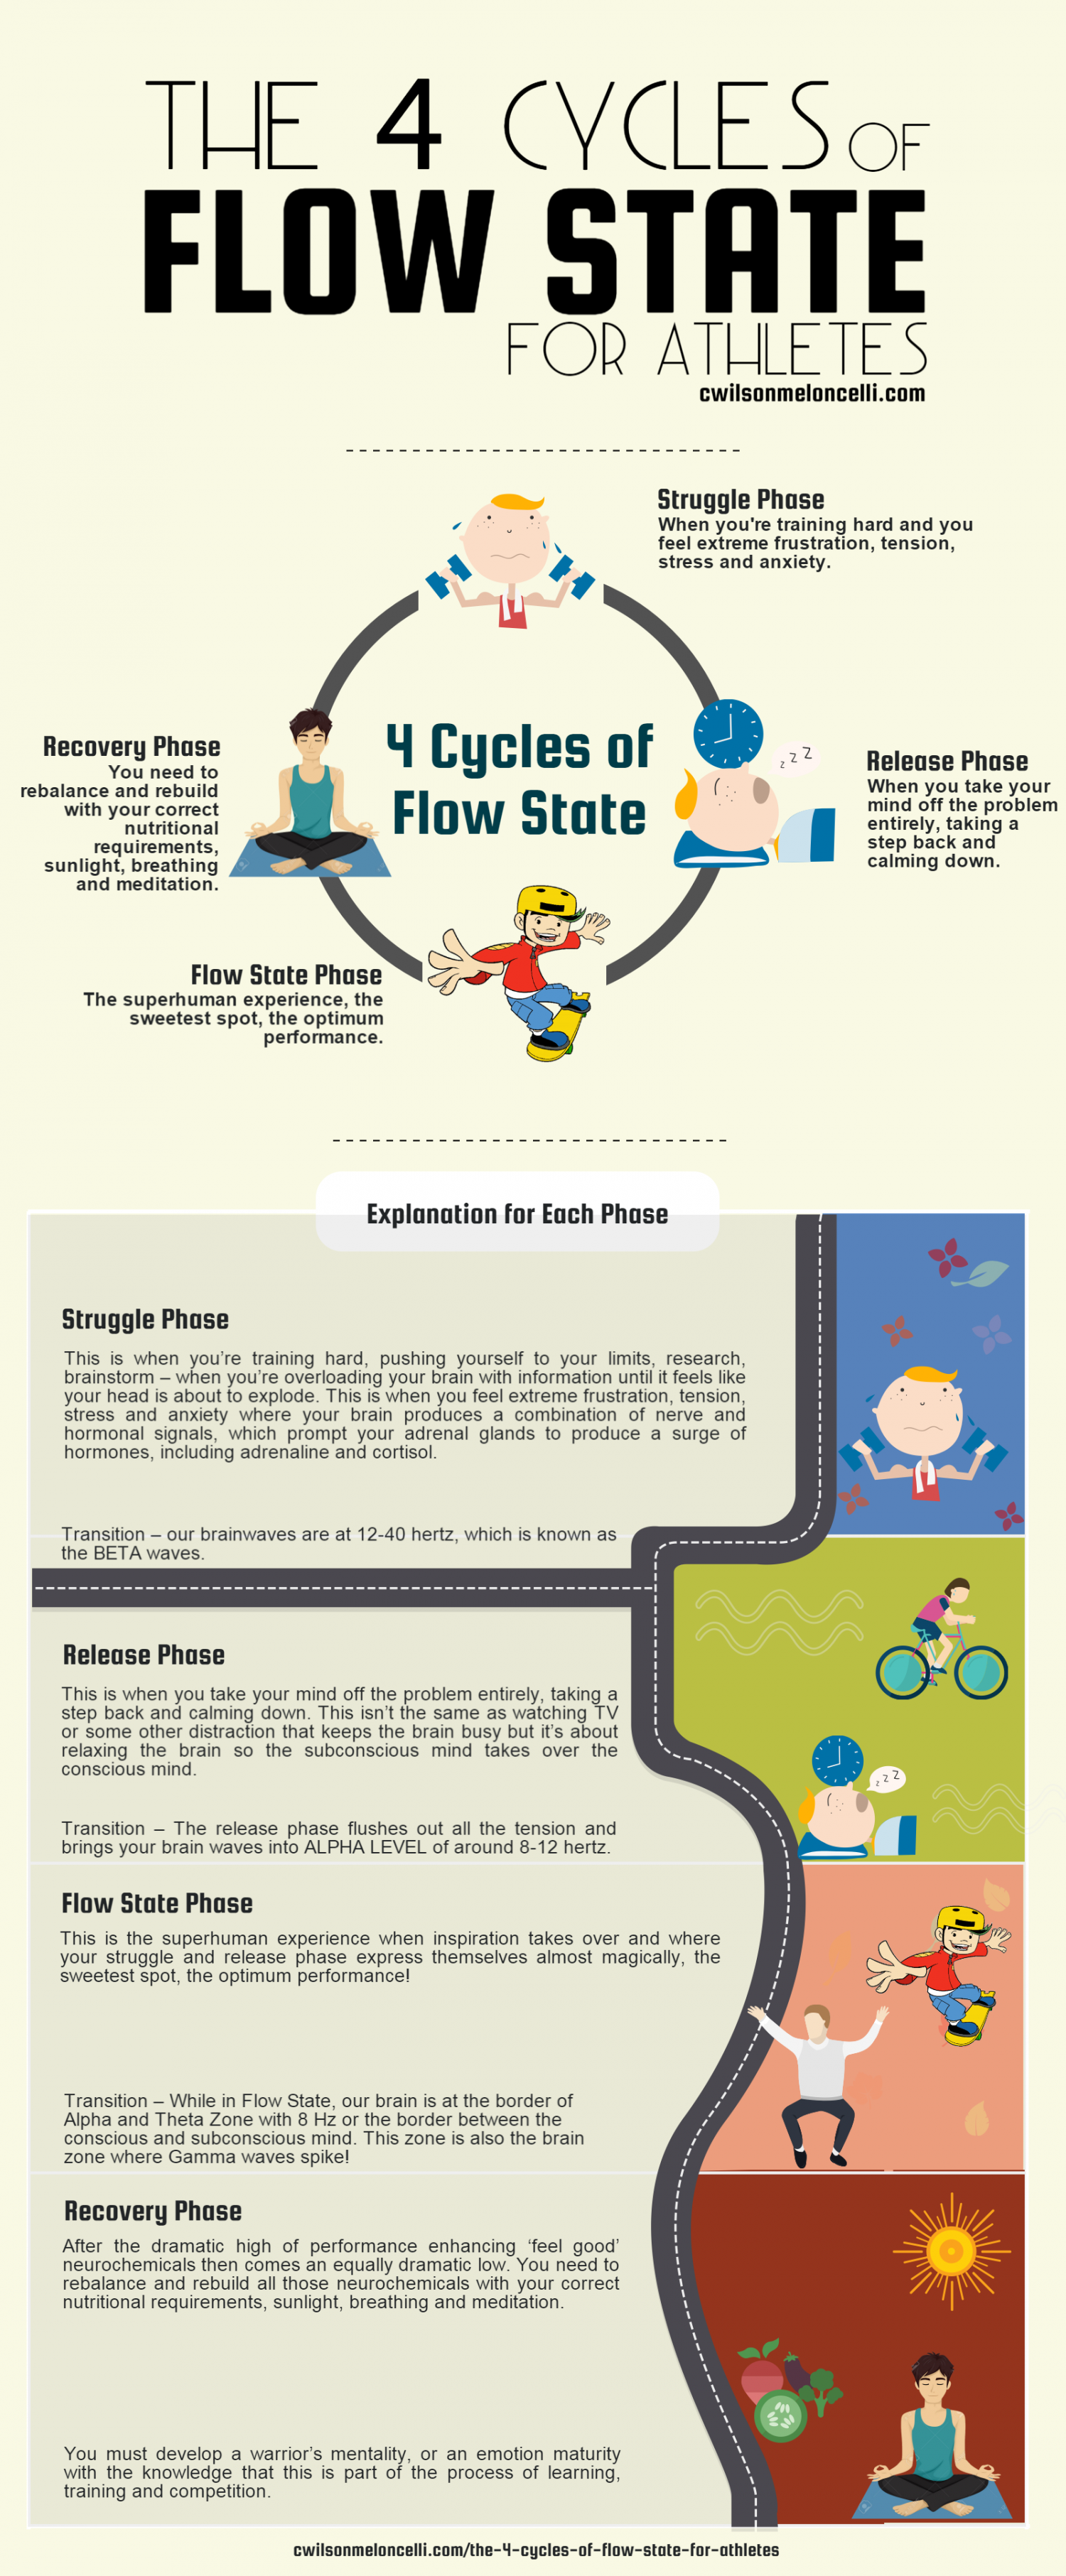 The 4 Cycles of Flow State for Athletes Infographic